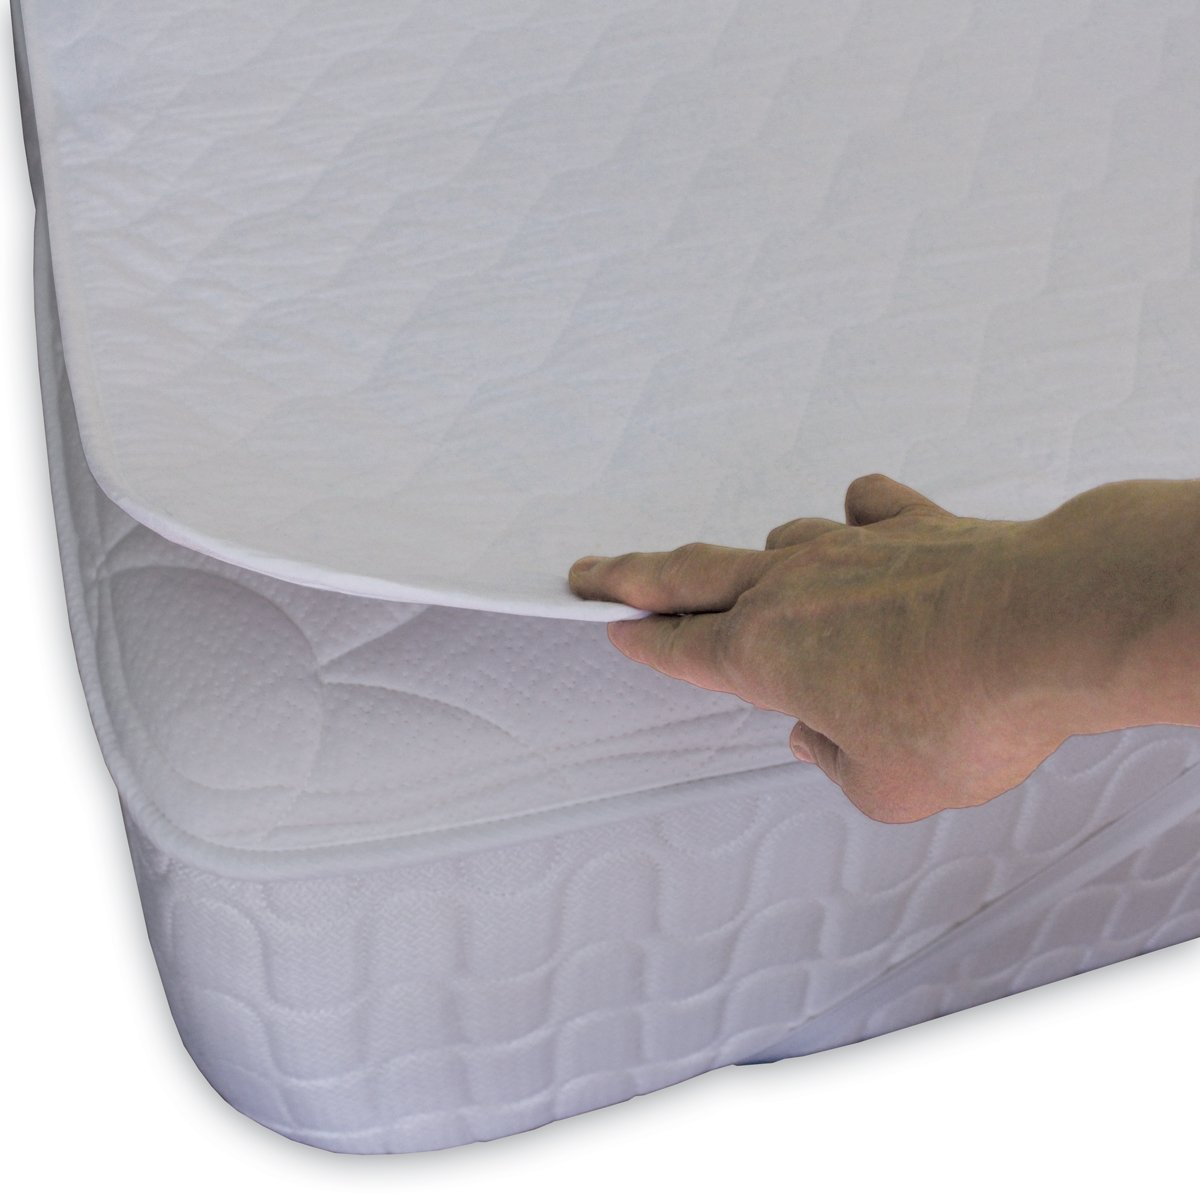 Waga Quilted Mattress Protector Premium - 20-YEAR WARRANTY - Waterproof and Breathable - Double (54'' x 75'')